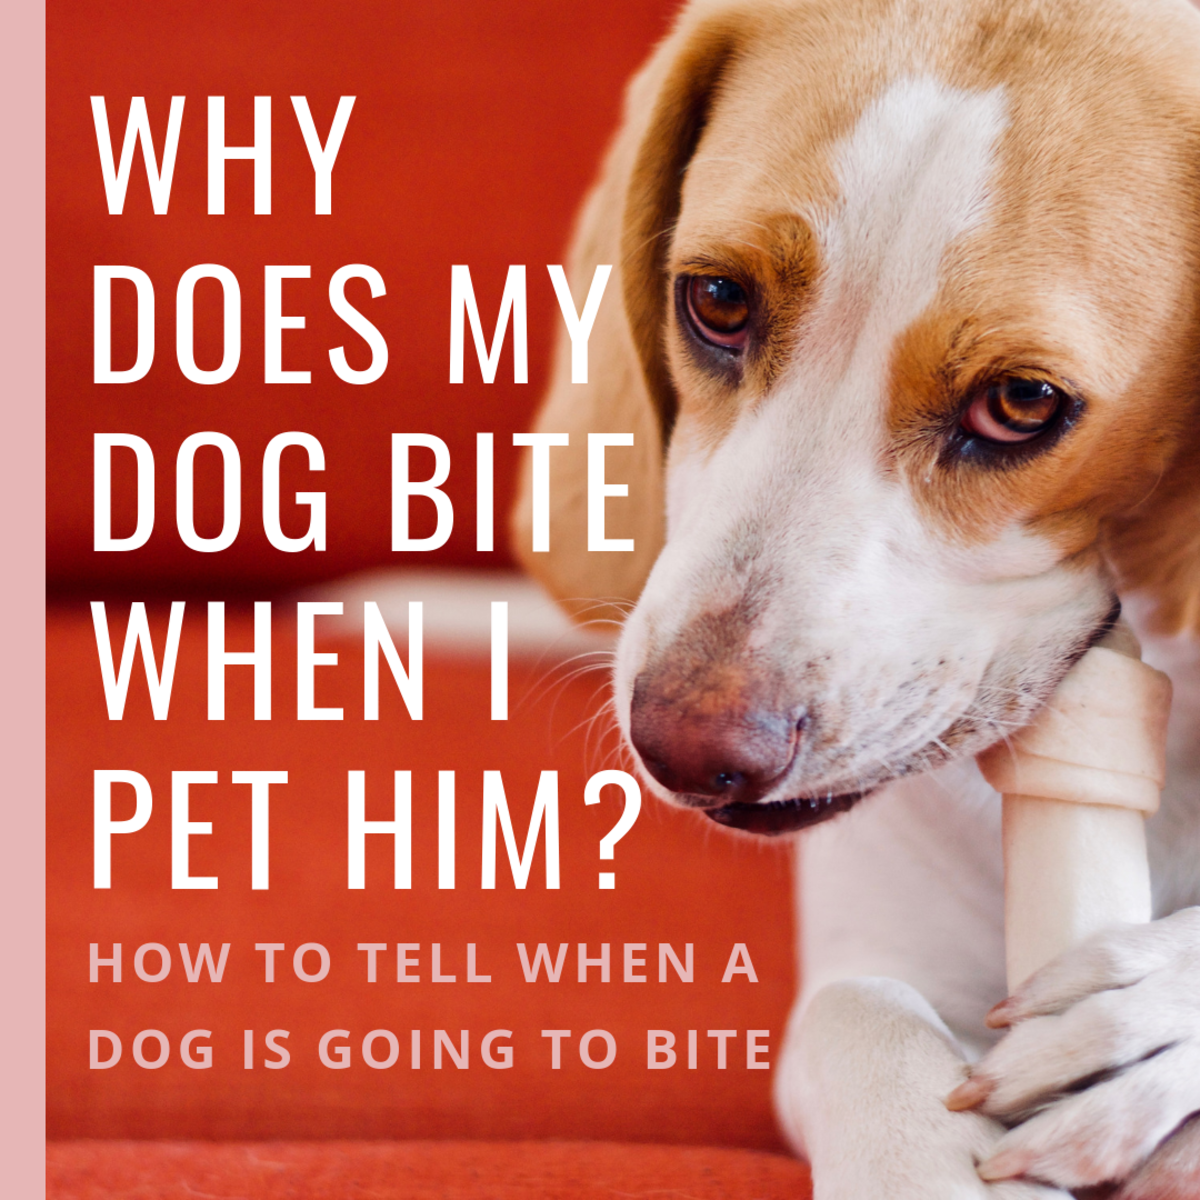 Why Do Dogs Bite When You Pet Them? (Signs a Dog Is Going to Bite)